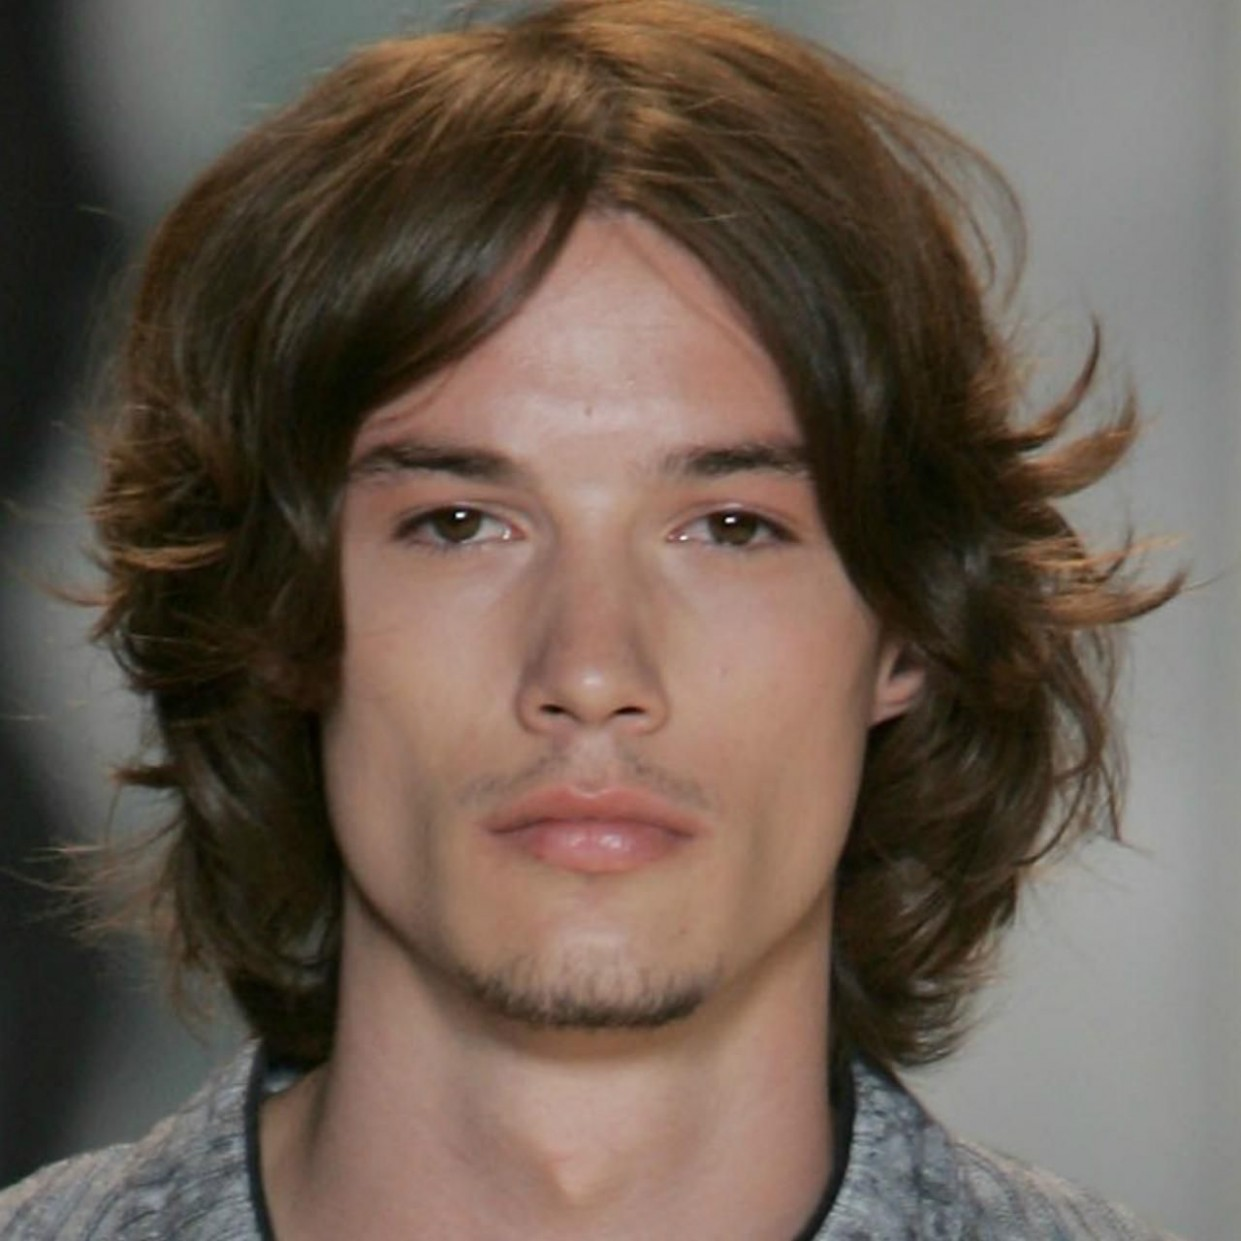 10 Of The Best Long Hairstyles For Men Hairstyles For Guys With Long Hair